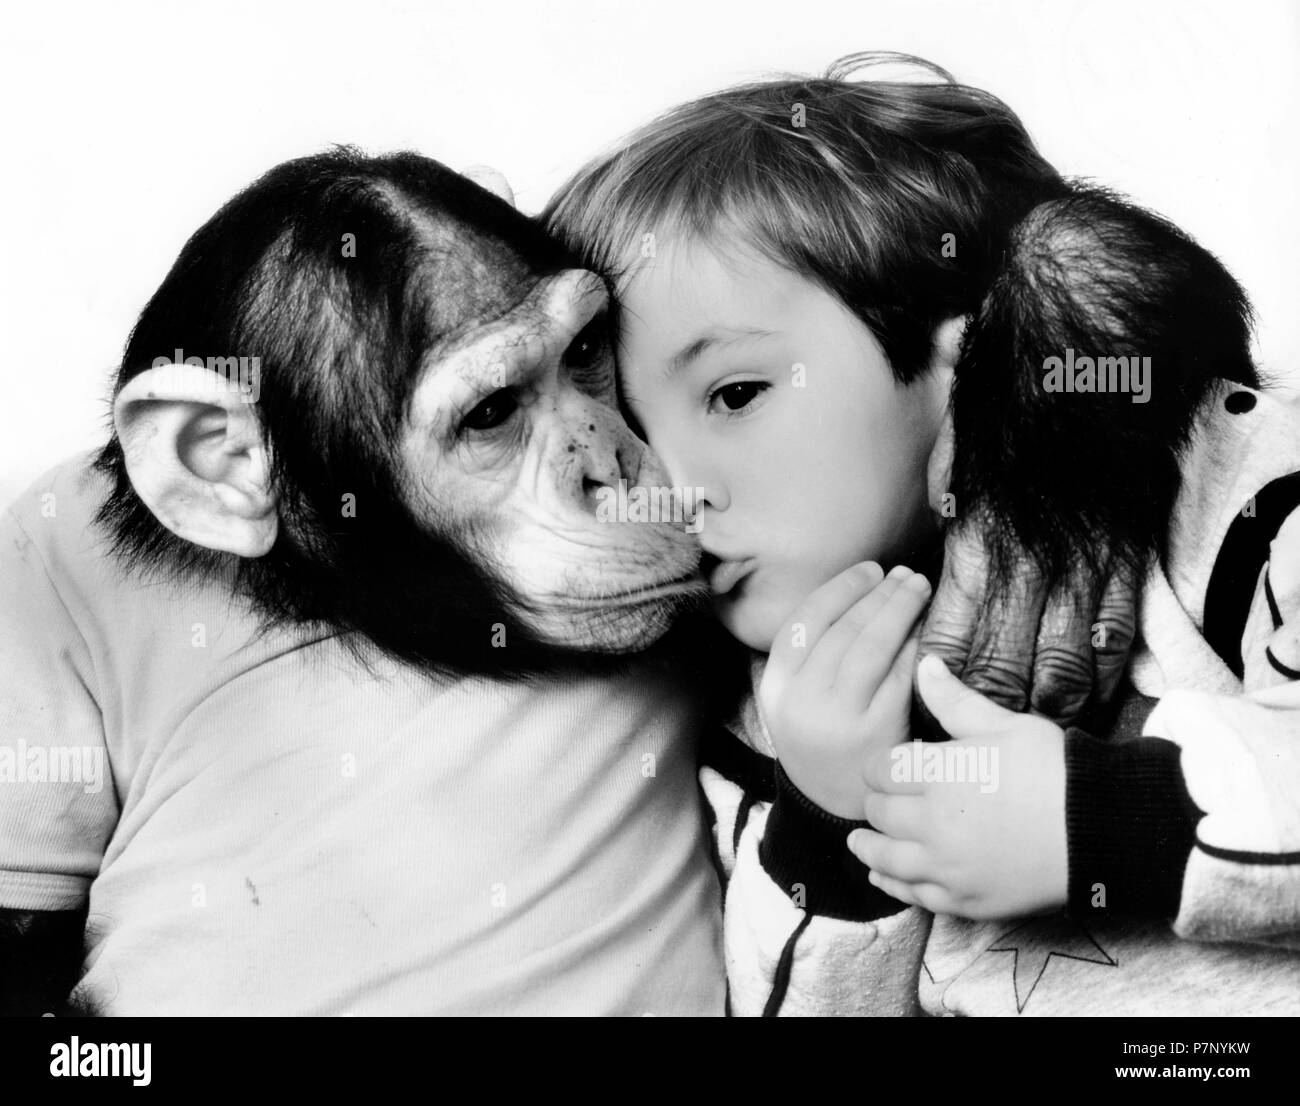 Chimpanzee kisses and hugs little boy, England, Great Britain - Stock Image